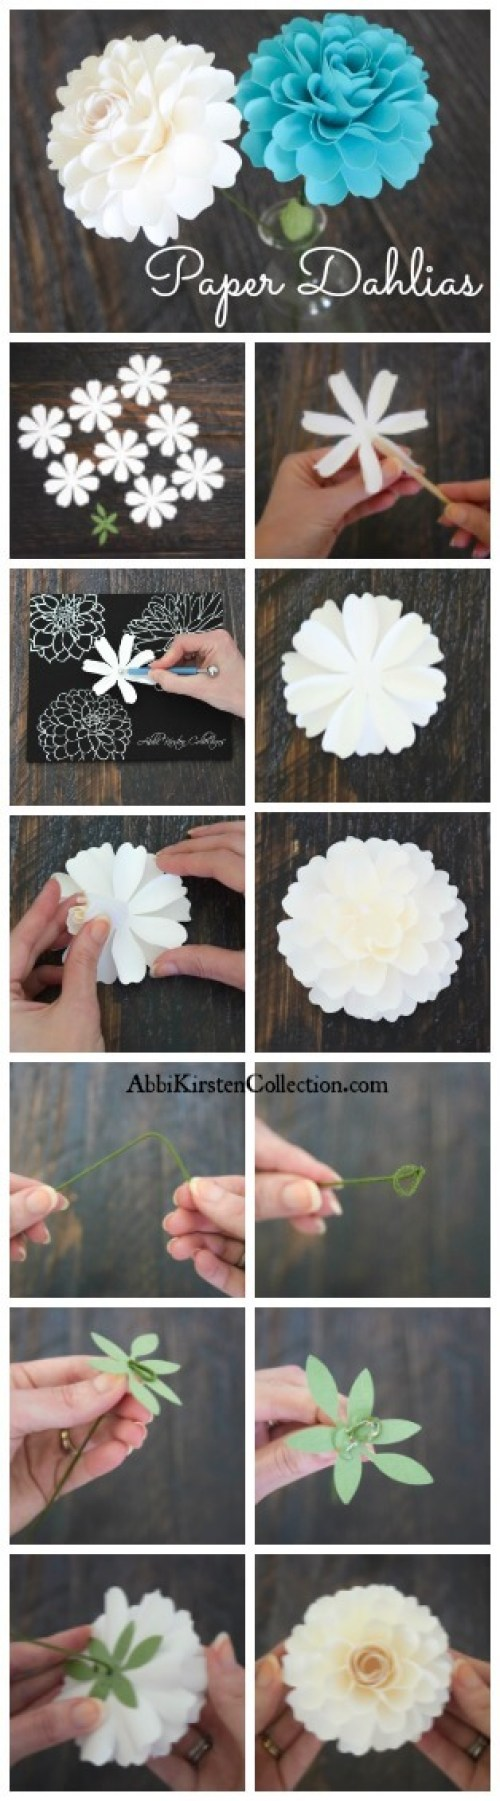 How to make paper dahlia flowers. Easy small paper flower tutorials.